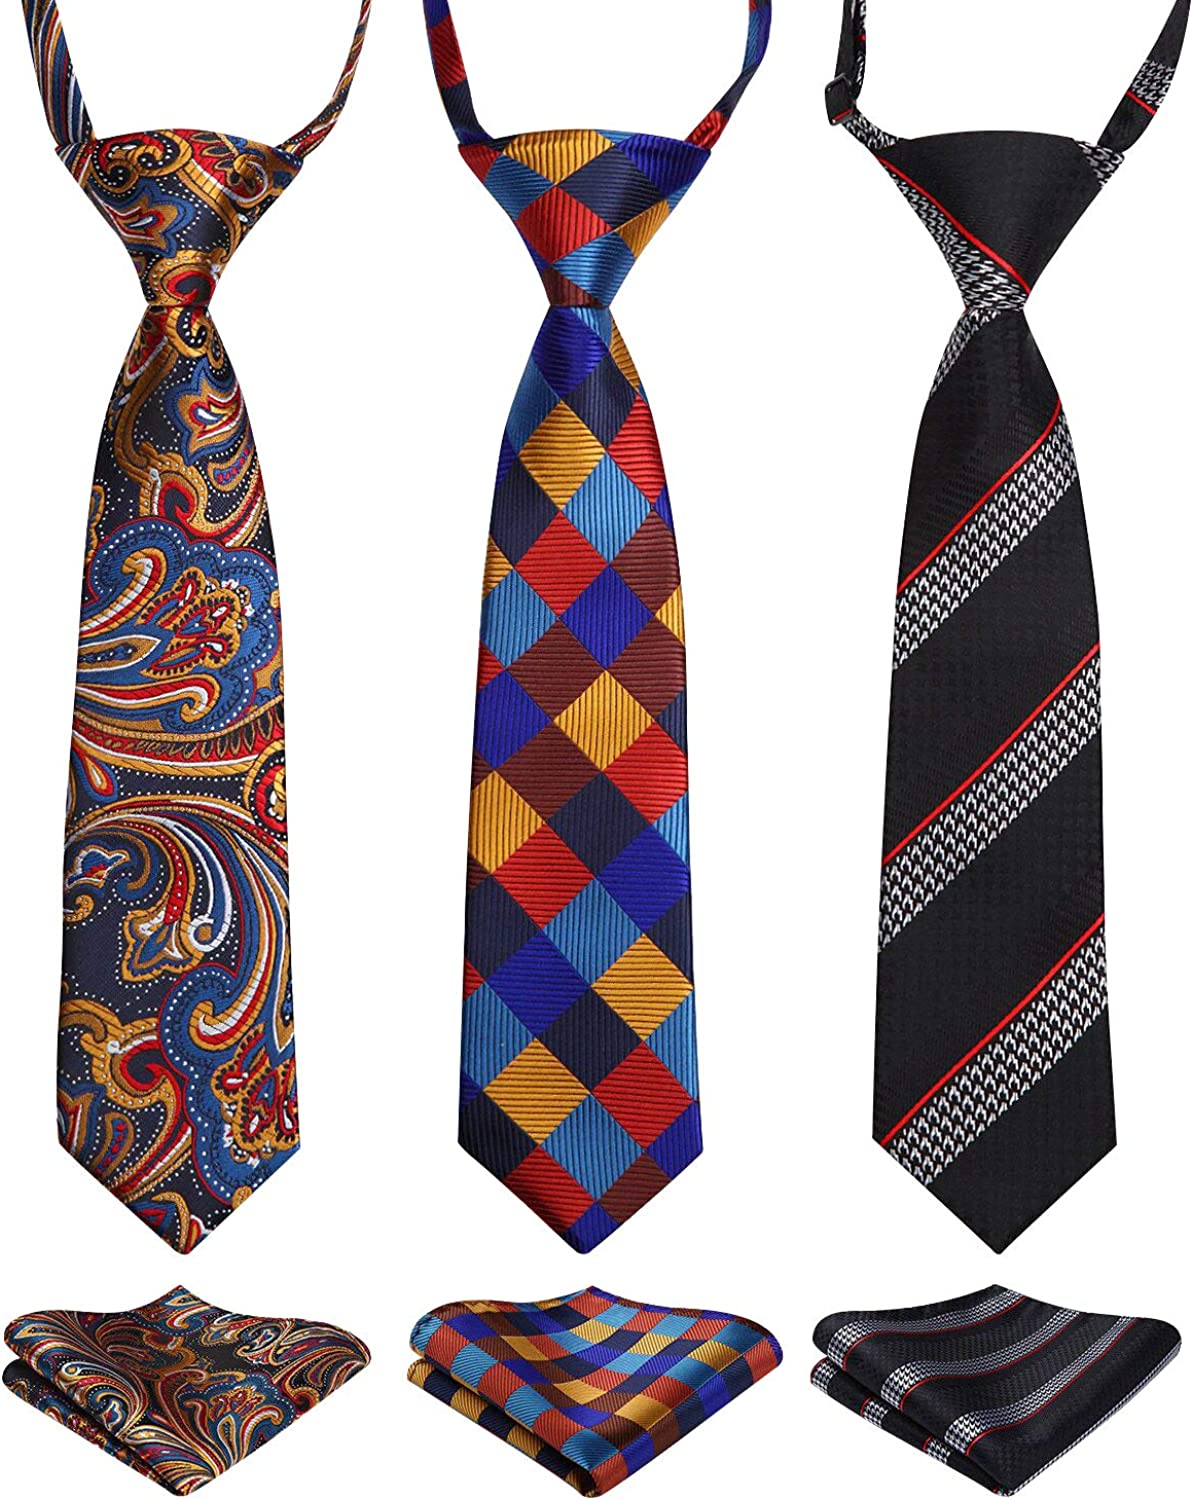 Enlision 3pcs NEW before selling ☆ Boys Pre-Tied Sales for sale Neckties Square St Set Neck Pocket